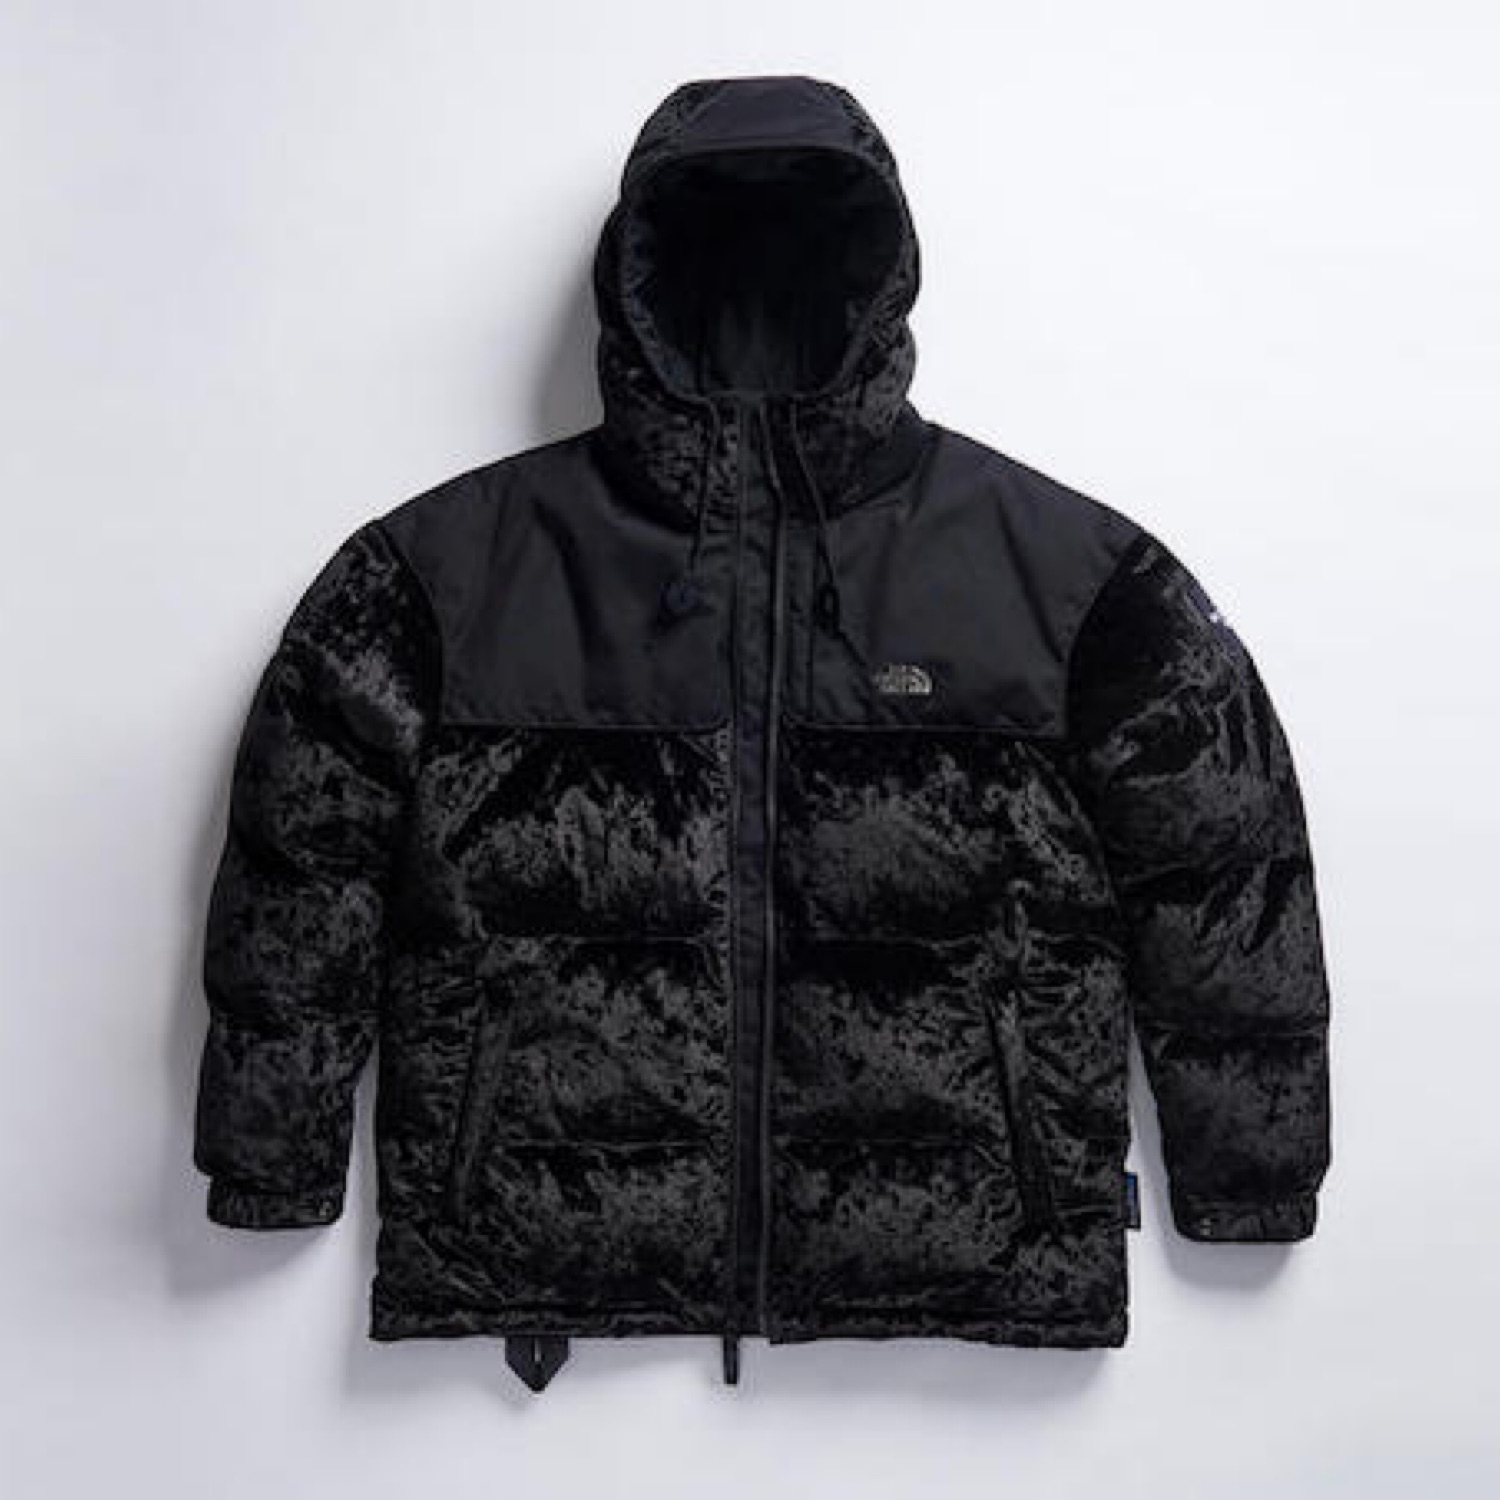 80dbfcd3a The North Face Black Series Urban Velvet Nuptse